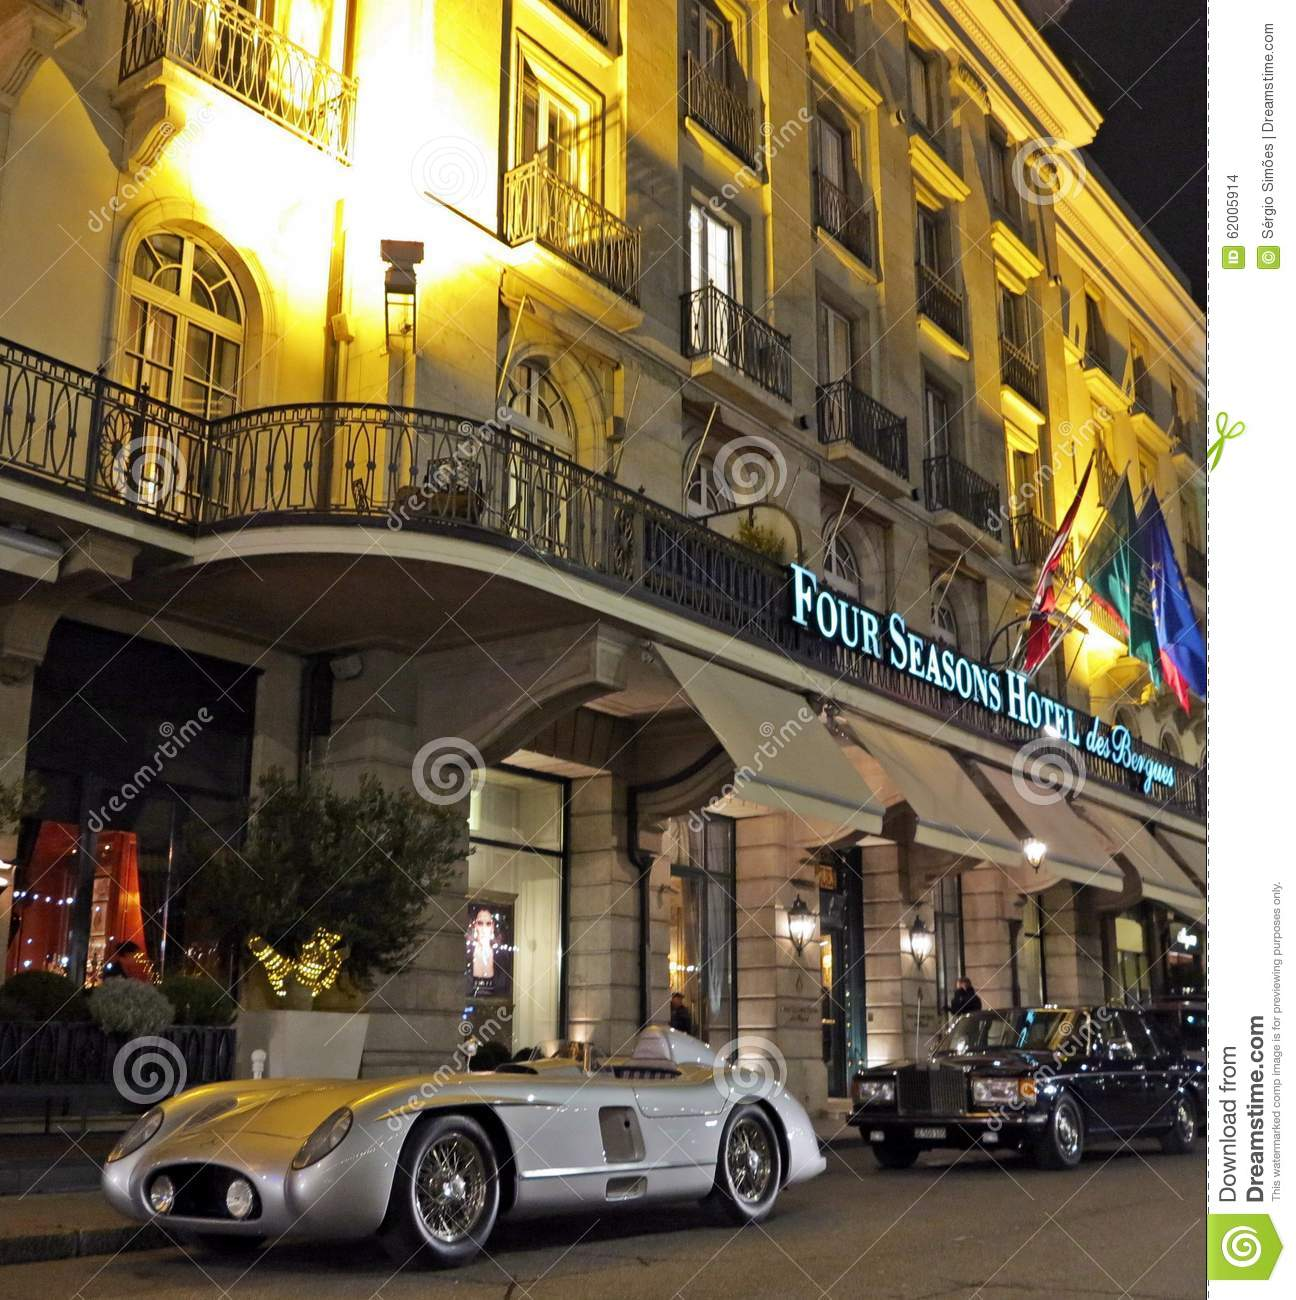 Mercedes benz 300 slr editorial stock image image of for Hotels by mercedes benz superdome